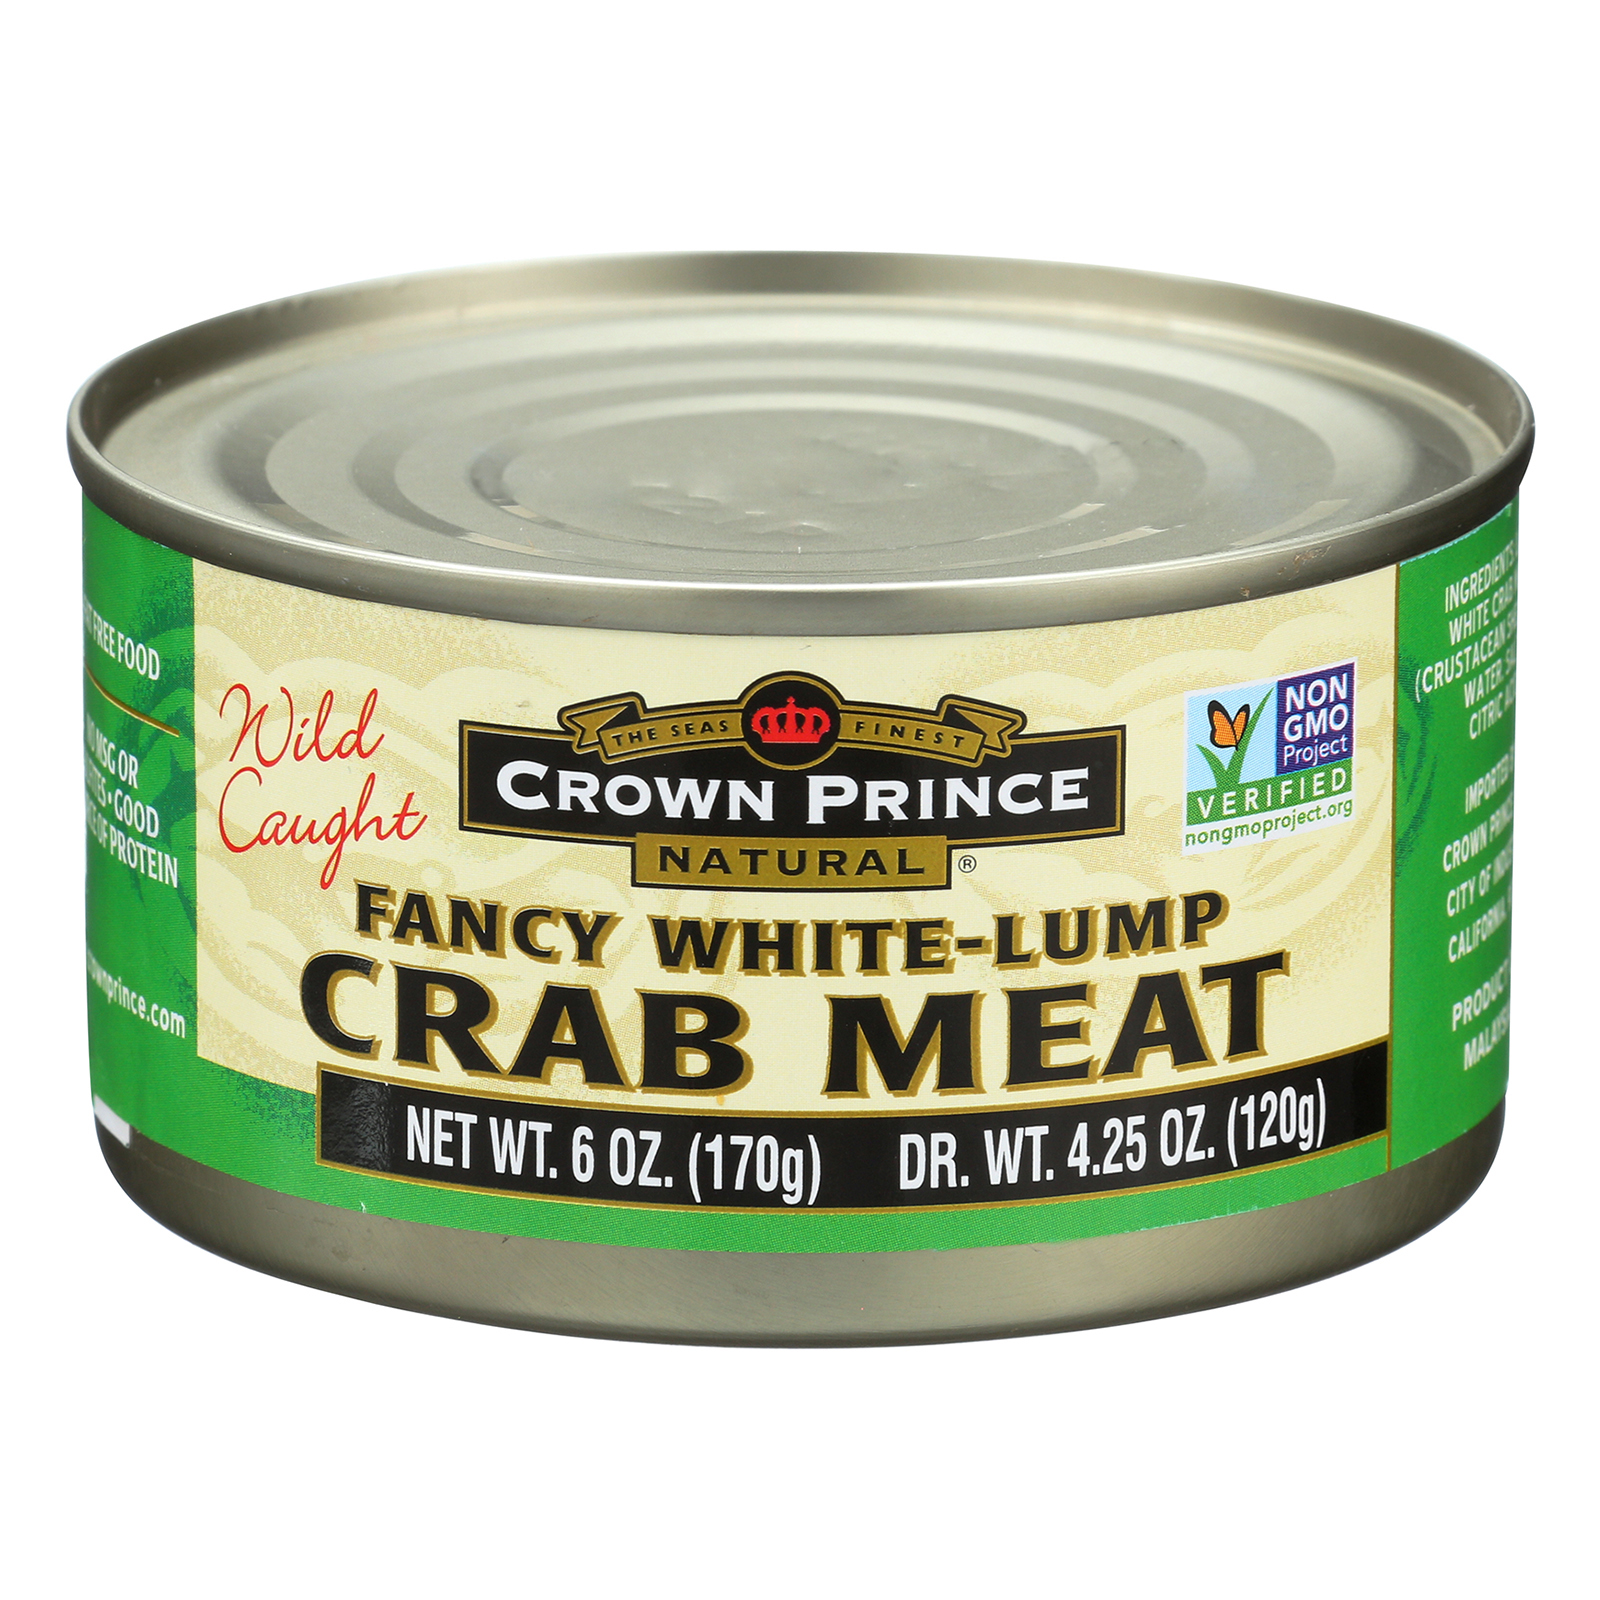 Crown Prince Natural Canned Fancy White-Lump Crab Meat, 6 Oz by Crown Prince